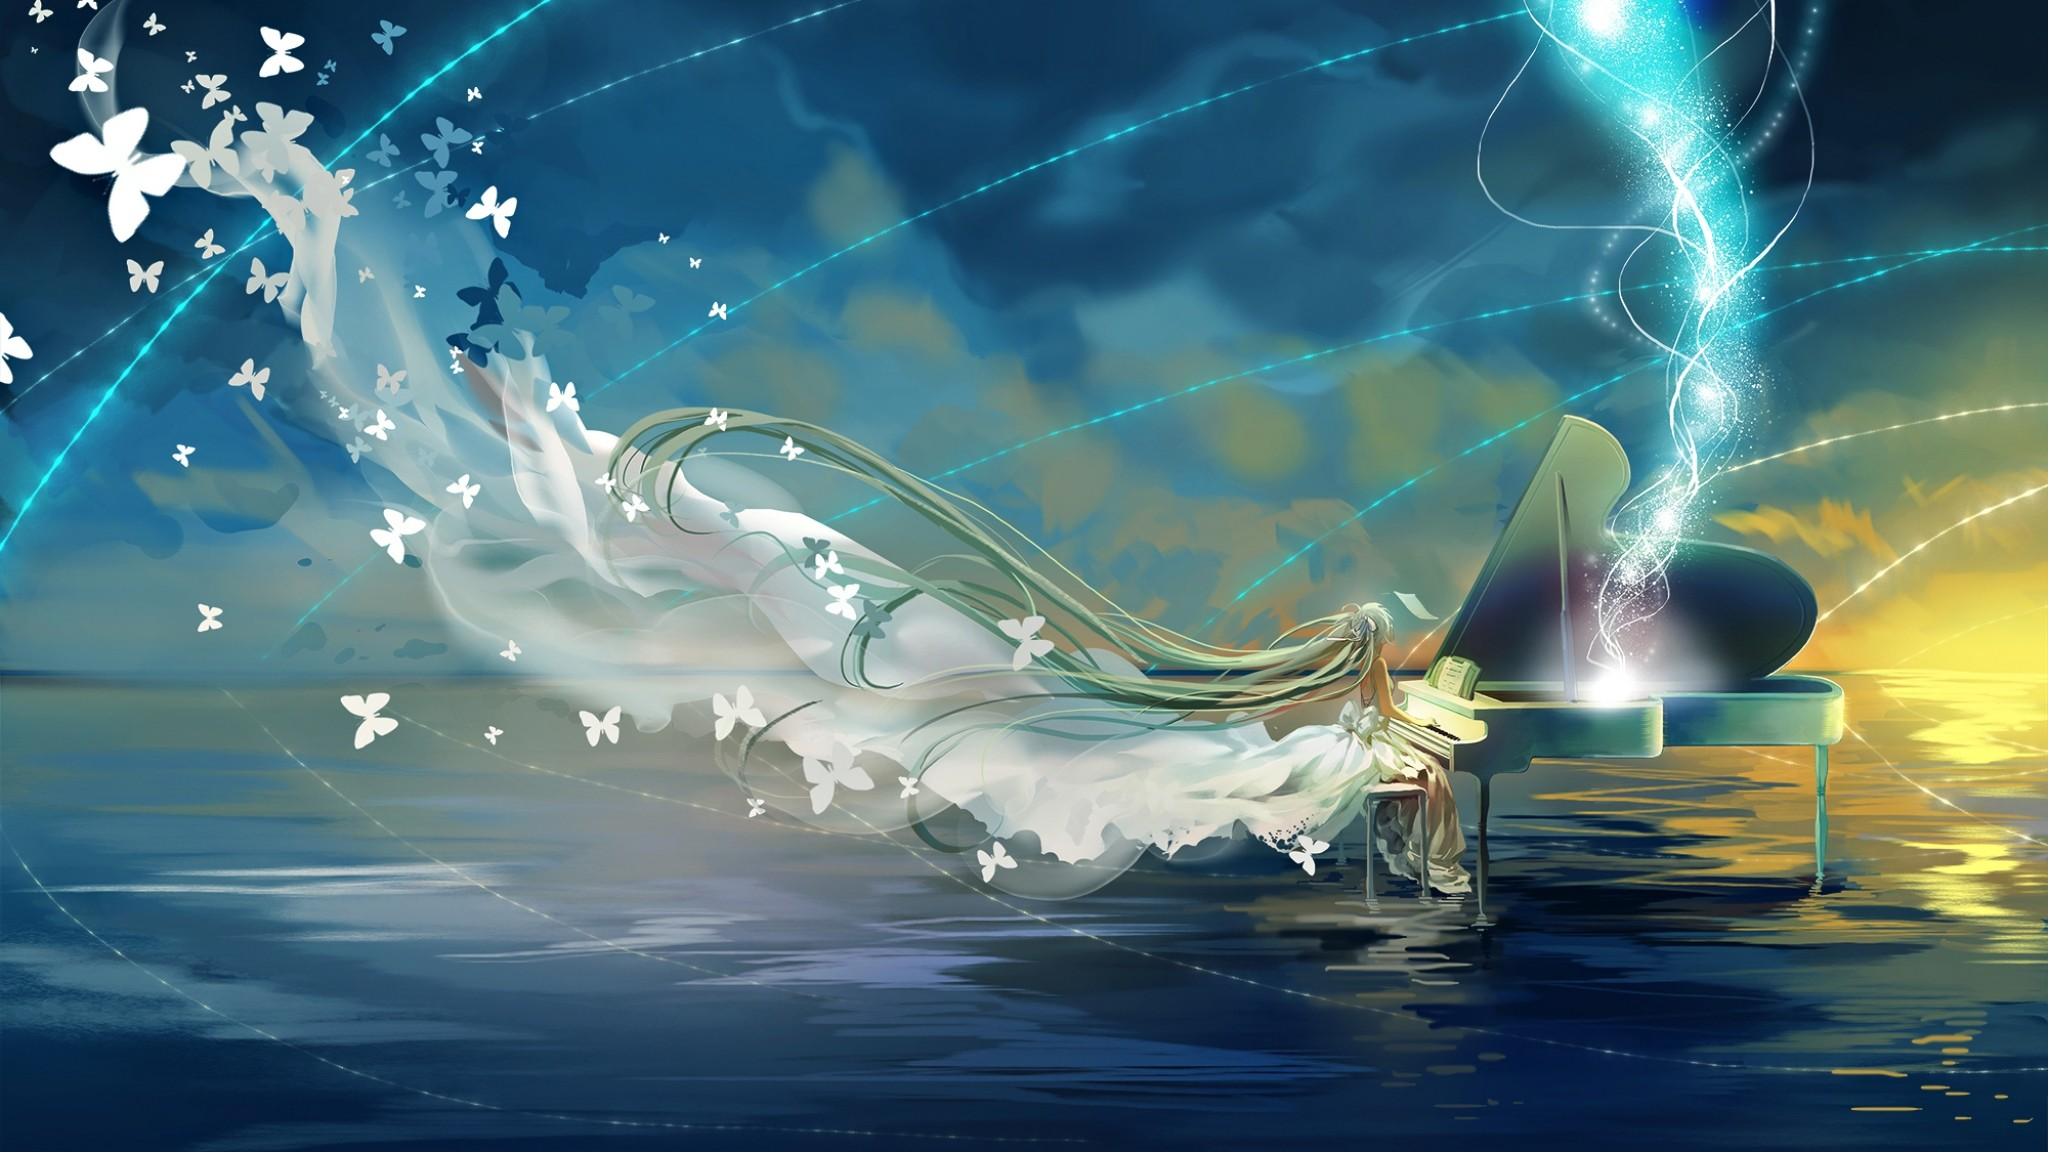 2048x1152 Preview wallpaper vocaloid, hatsune miku, piano, sky, butterfly